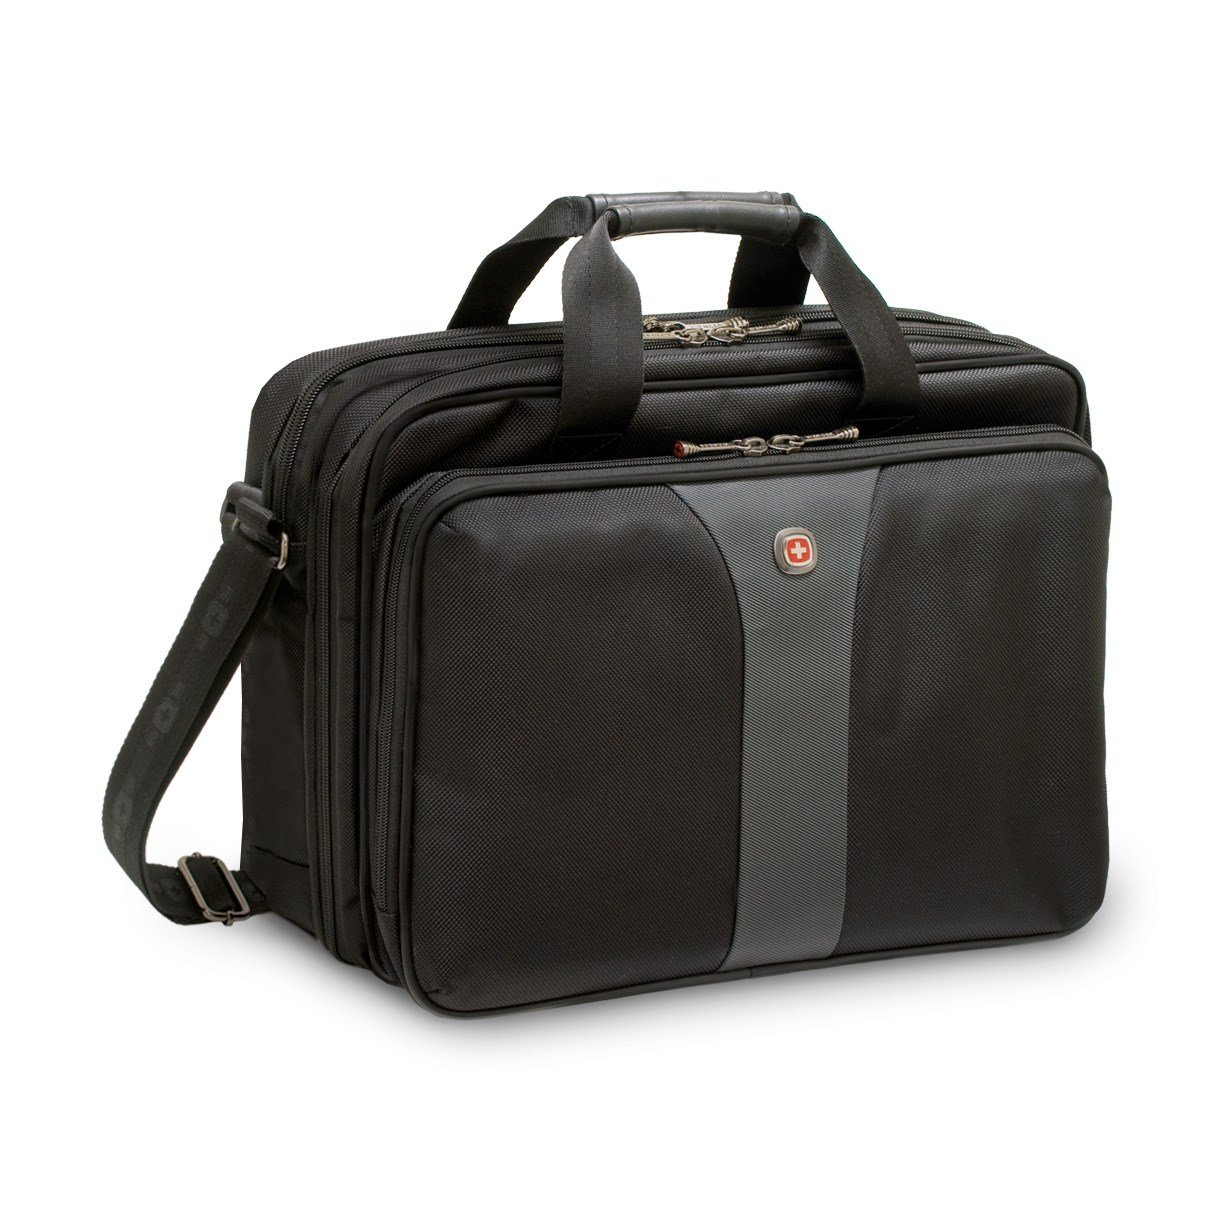 e883701ba Wenger SwissGear Legacy Double Case (Black) up to 16 inch Laptops -  WA-7652-14